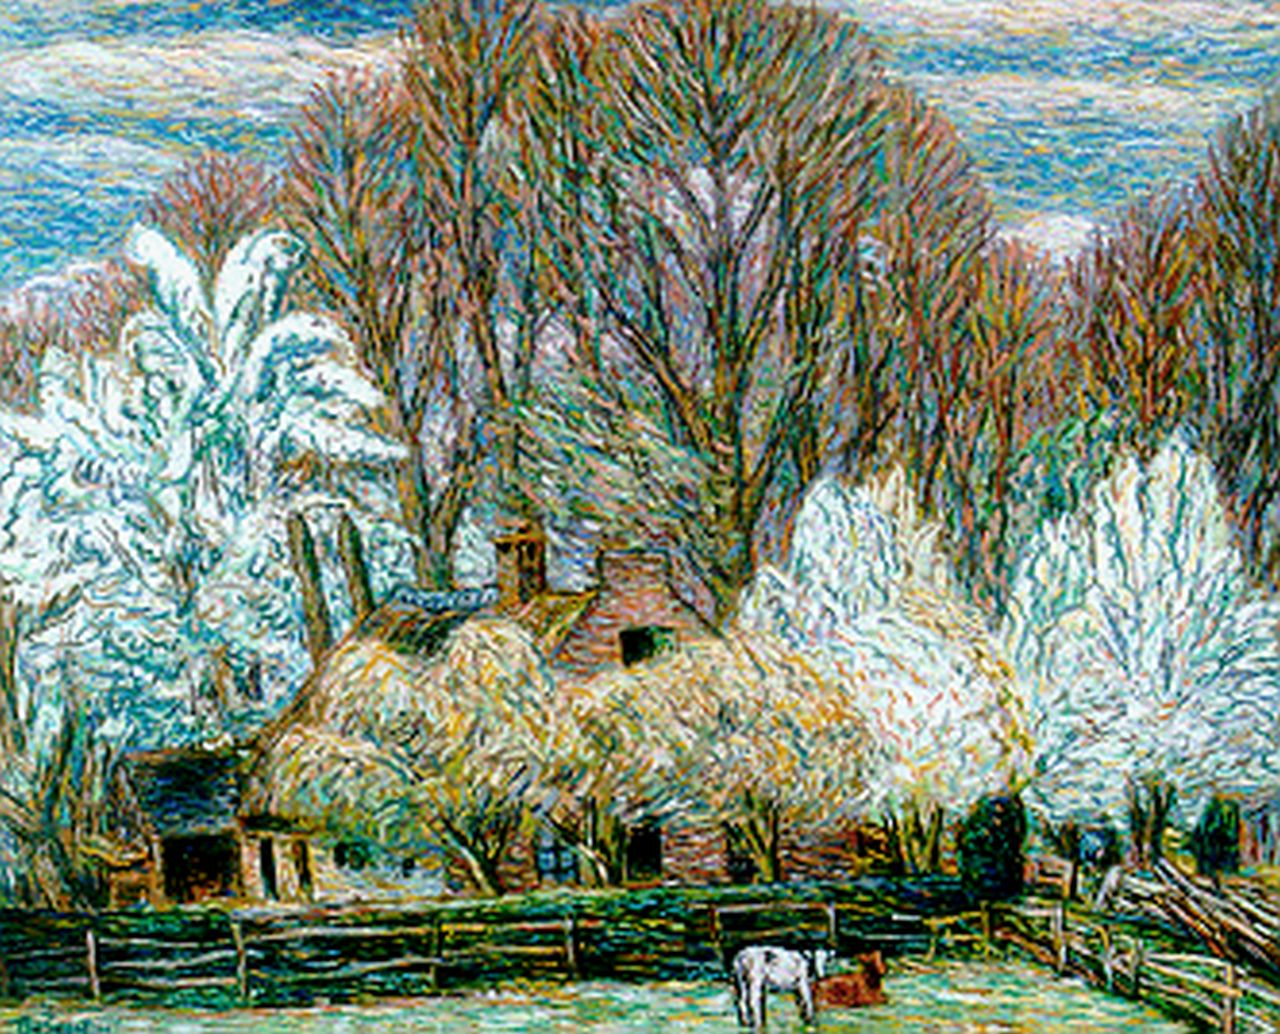 Gestel L.  | Leendert 'Leo' Gestel, A farm in spring, Eemnes, pastel on paper 61.0 x 76.5 cm, signed l.l. and dated '39